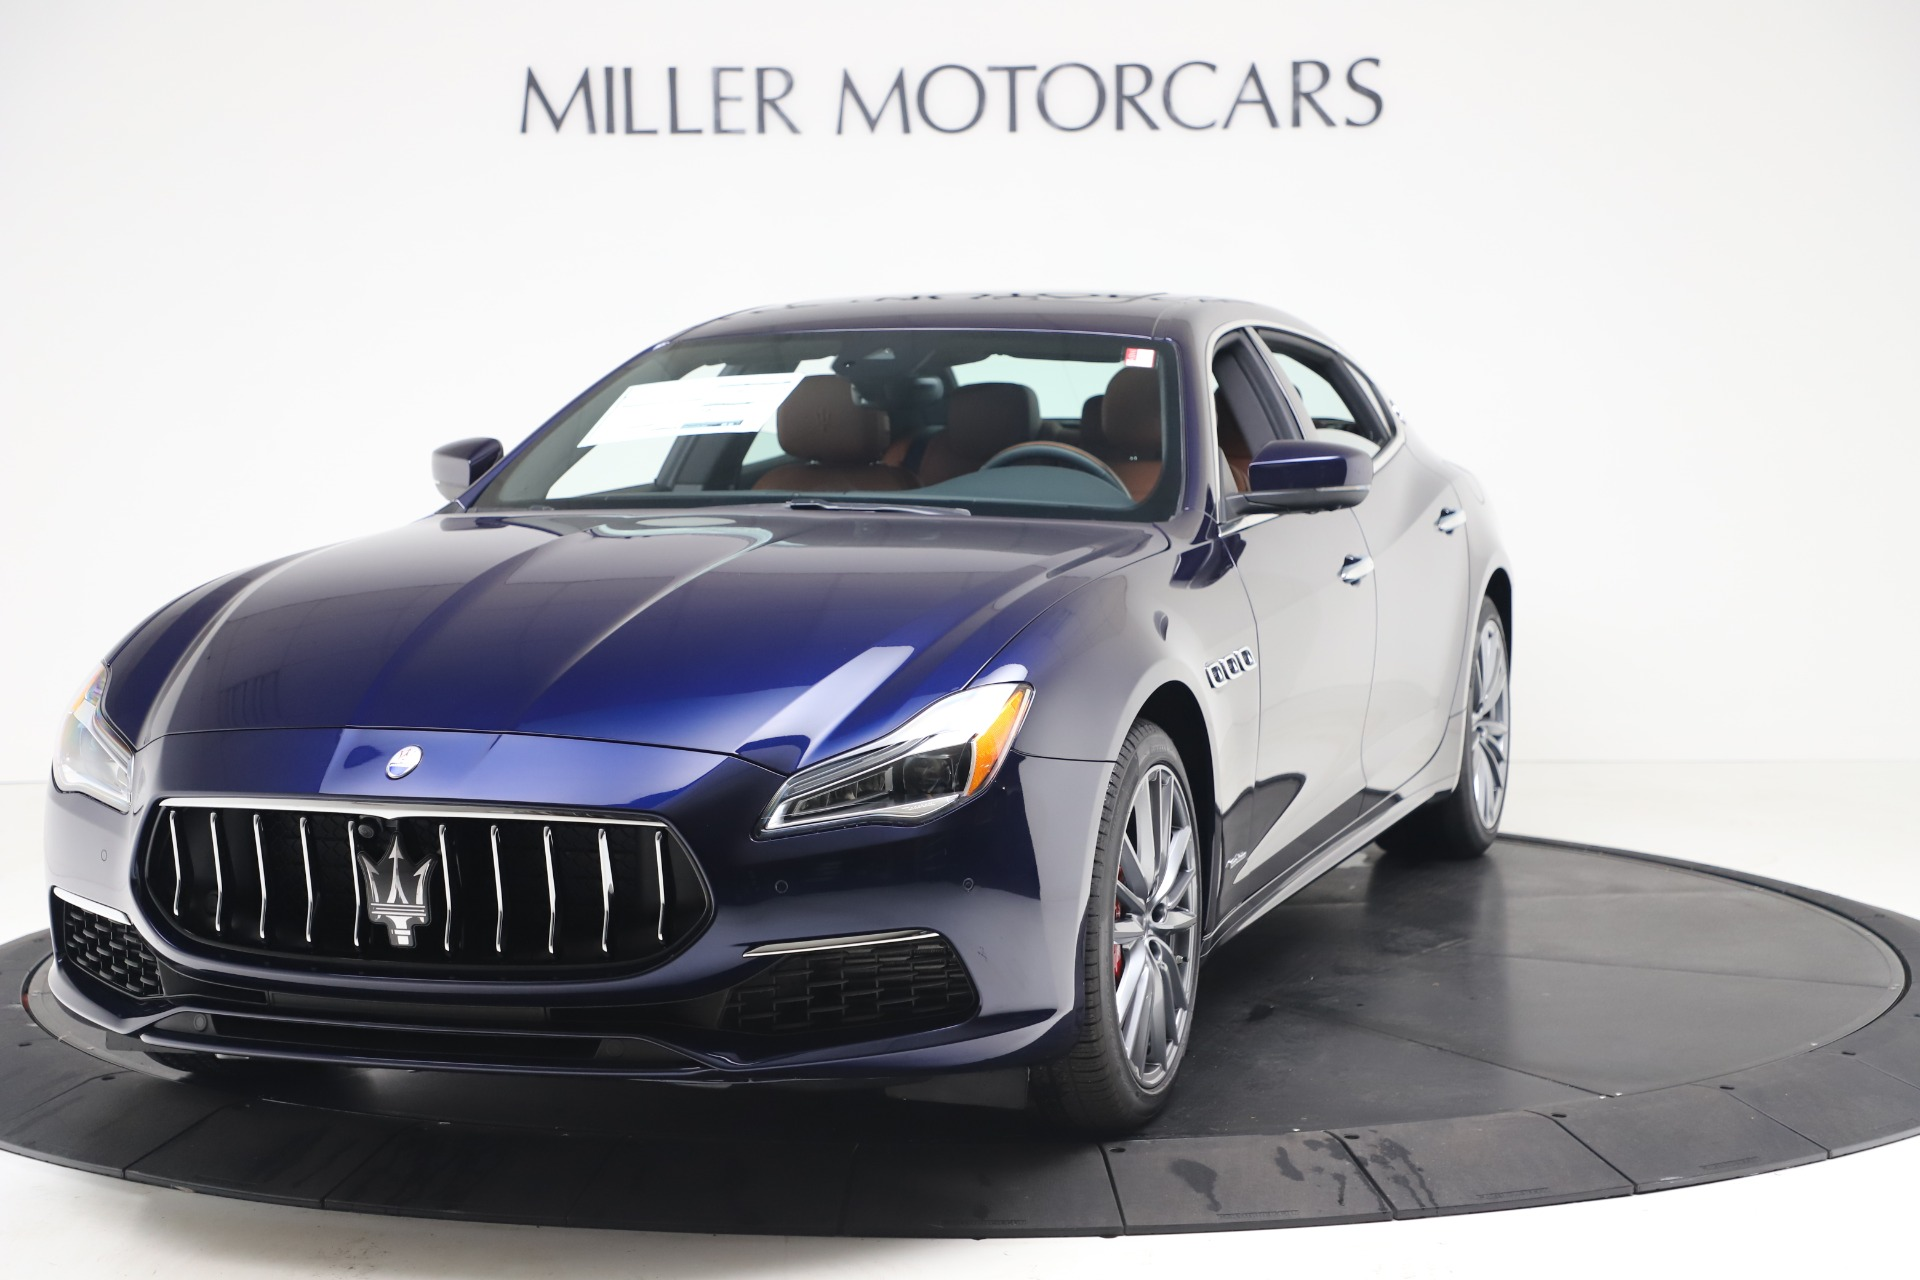 New 2020 Maserati Quattroporte S Q4 GranLusso for sale Sold at Rolls-Royce Motor Cars Greenwich in Greenwich CT 06830 1